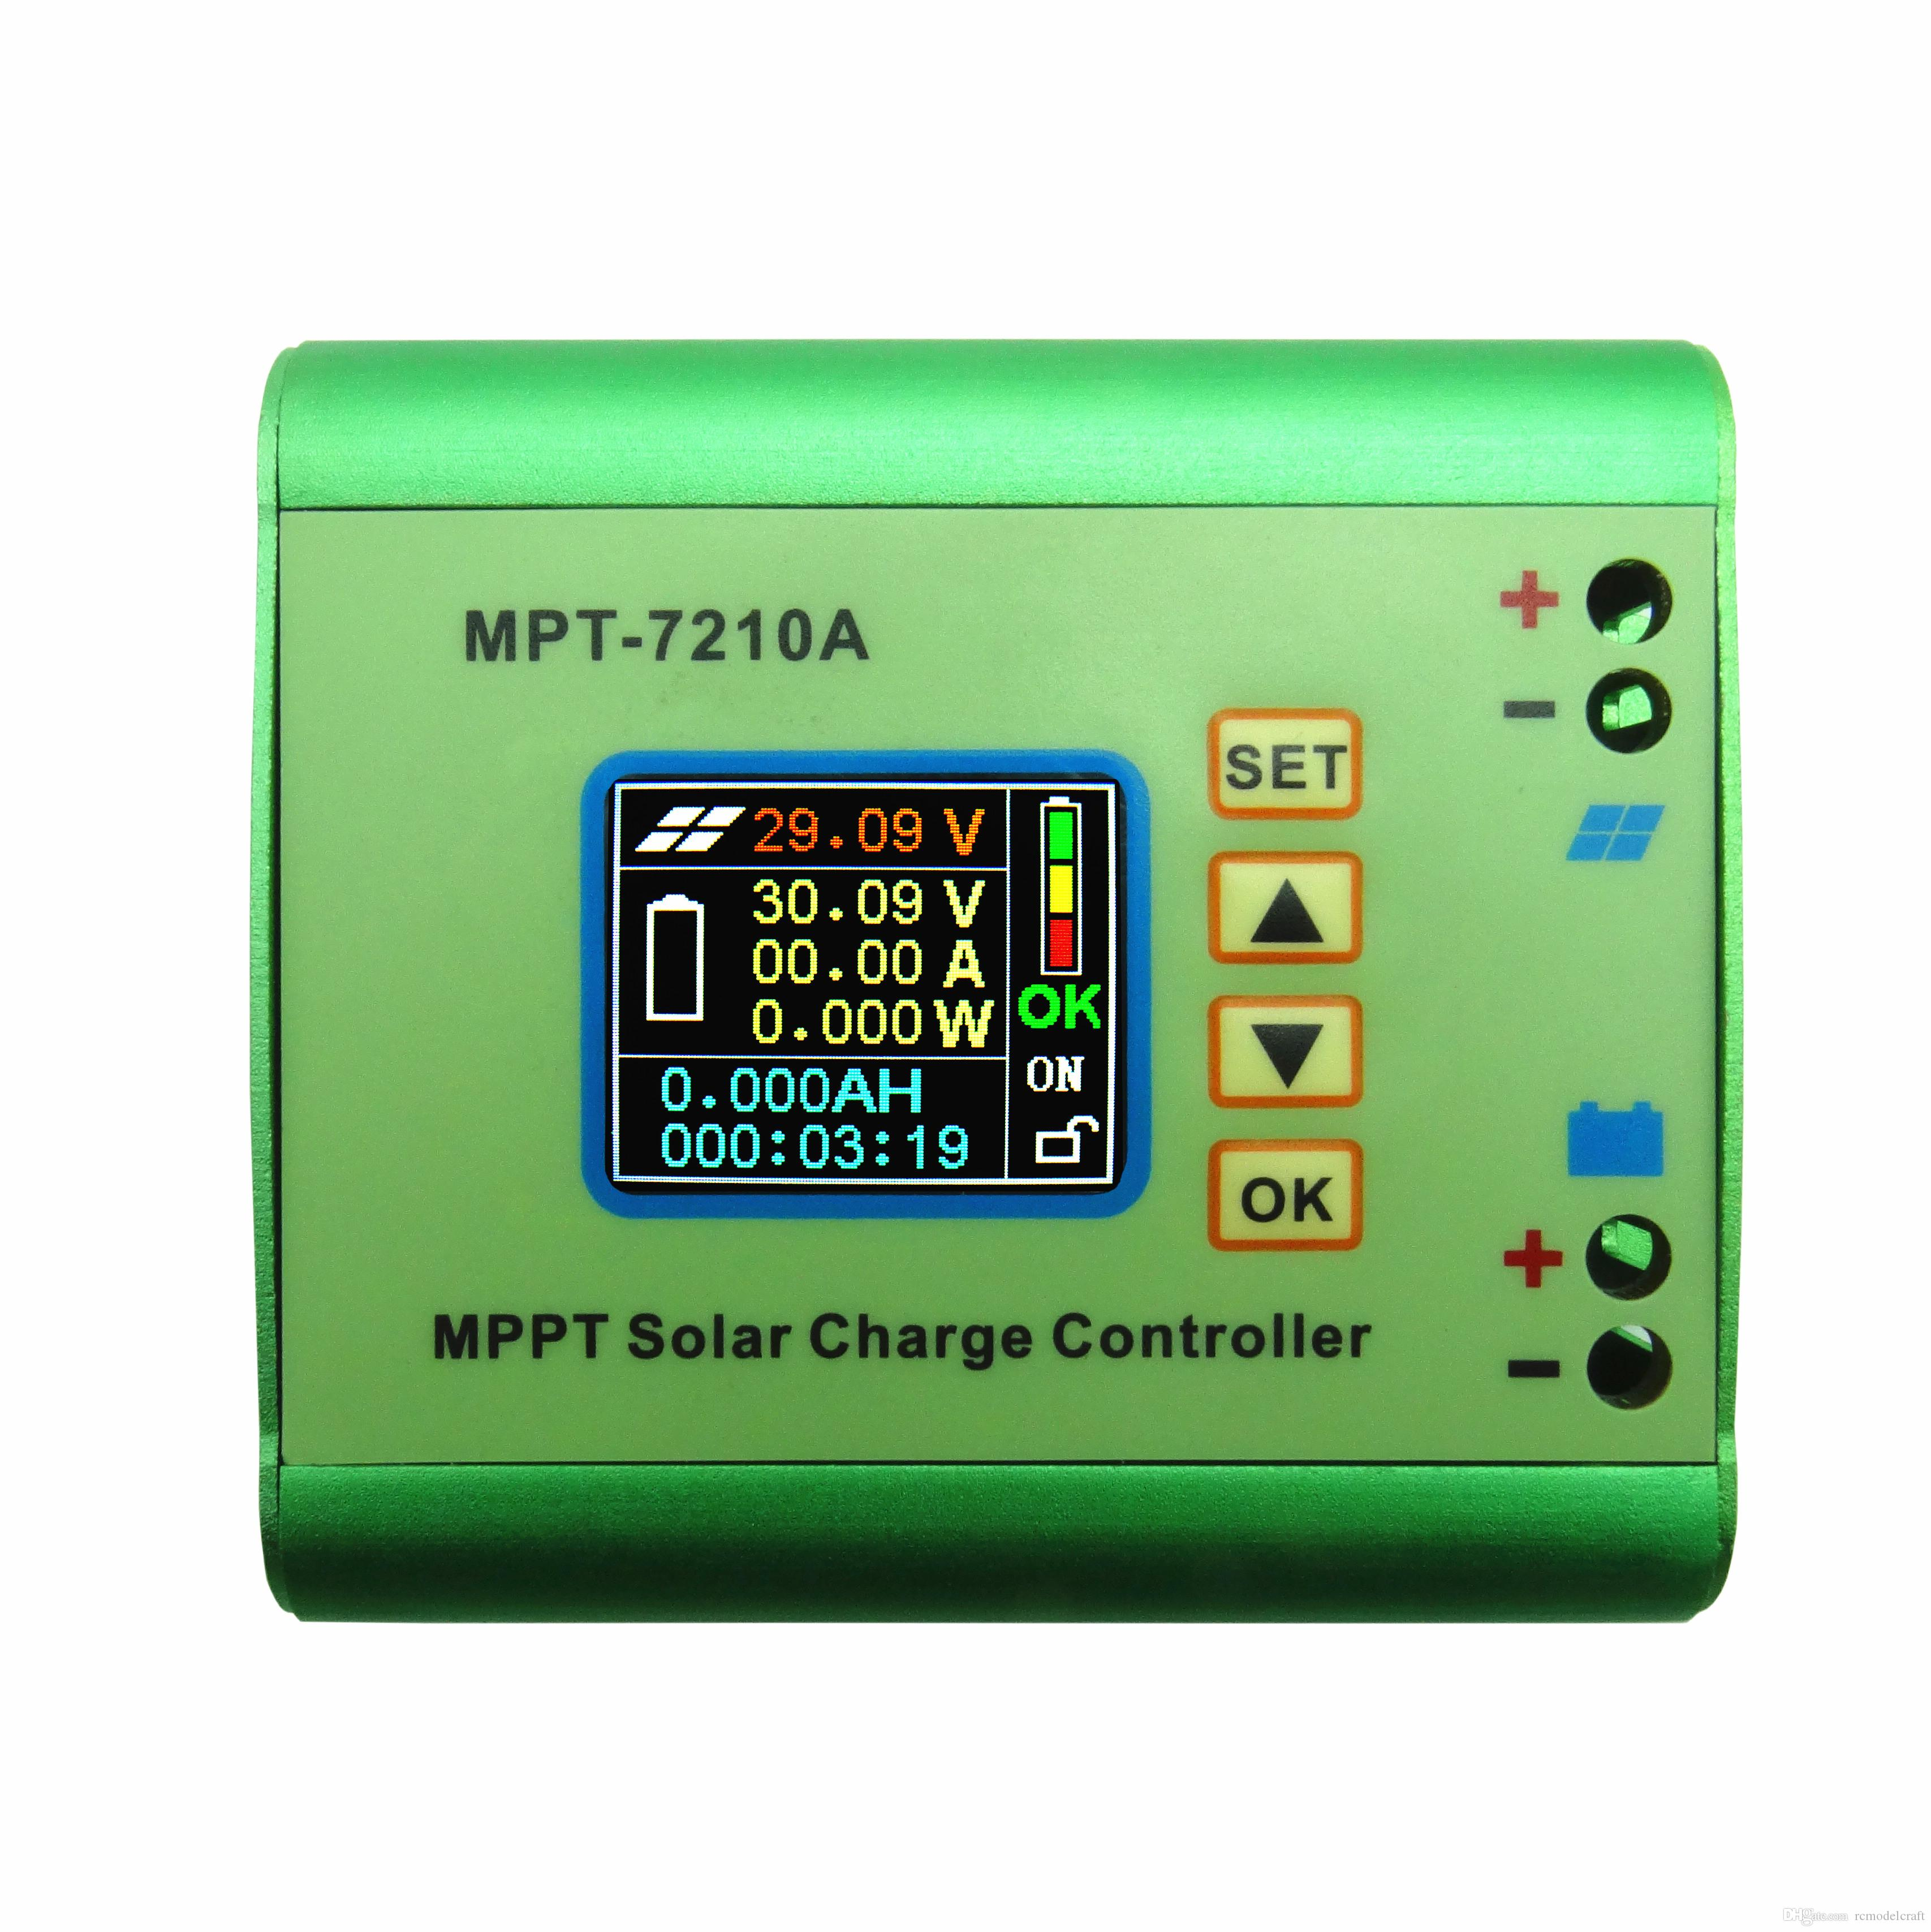 Mpt 7210a 10a Dc12 60v Mppt Solar Panel Charge Controller Picture Of Battery Charging Accommodate Dc Power Max600w 24v 36v 48v 72v Air Breeze Wind Turbine